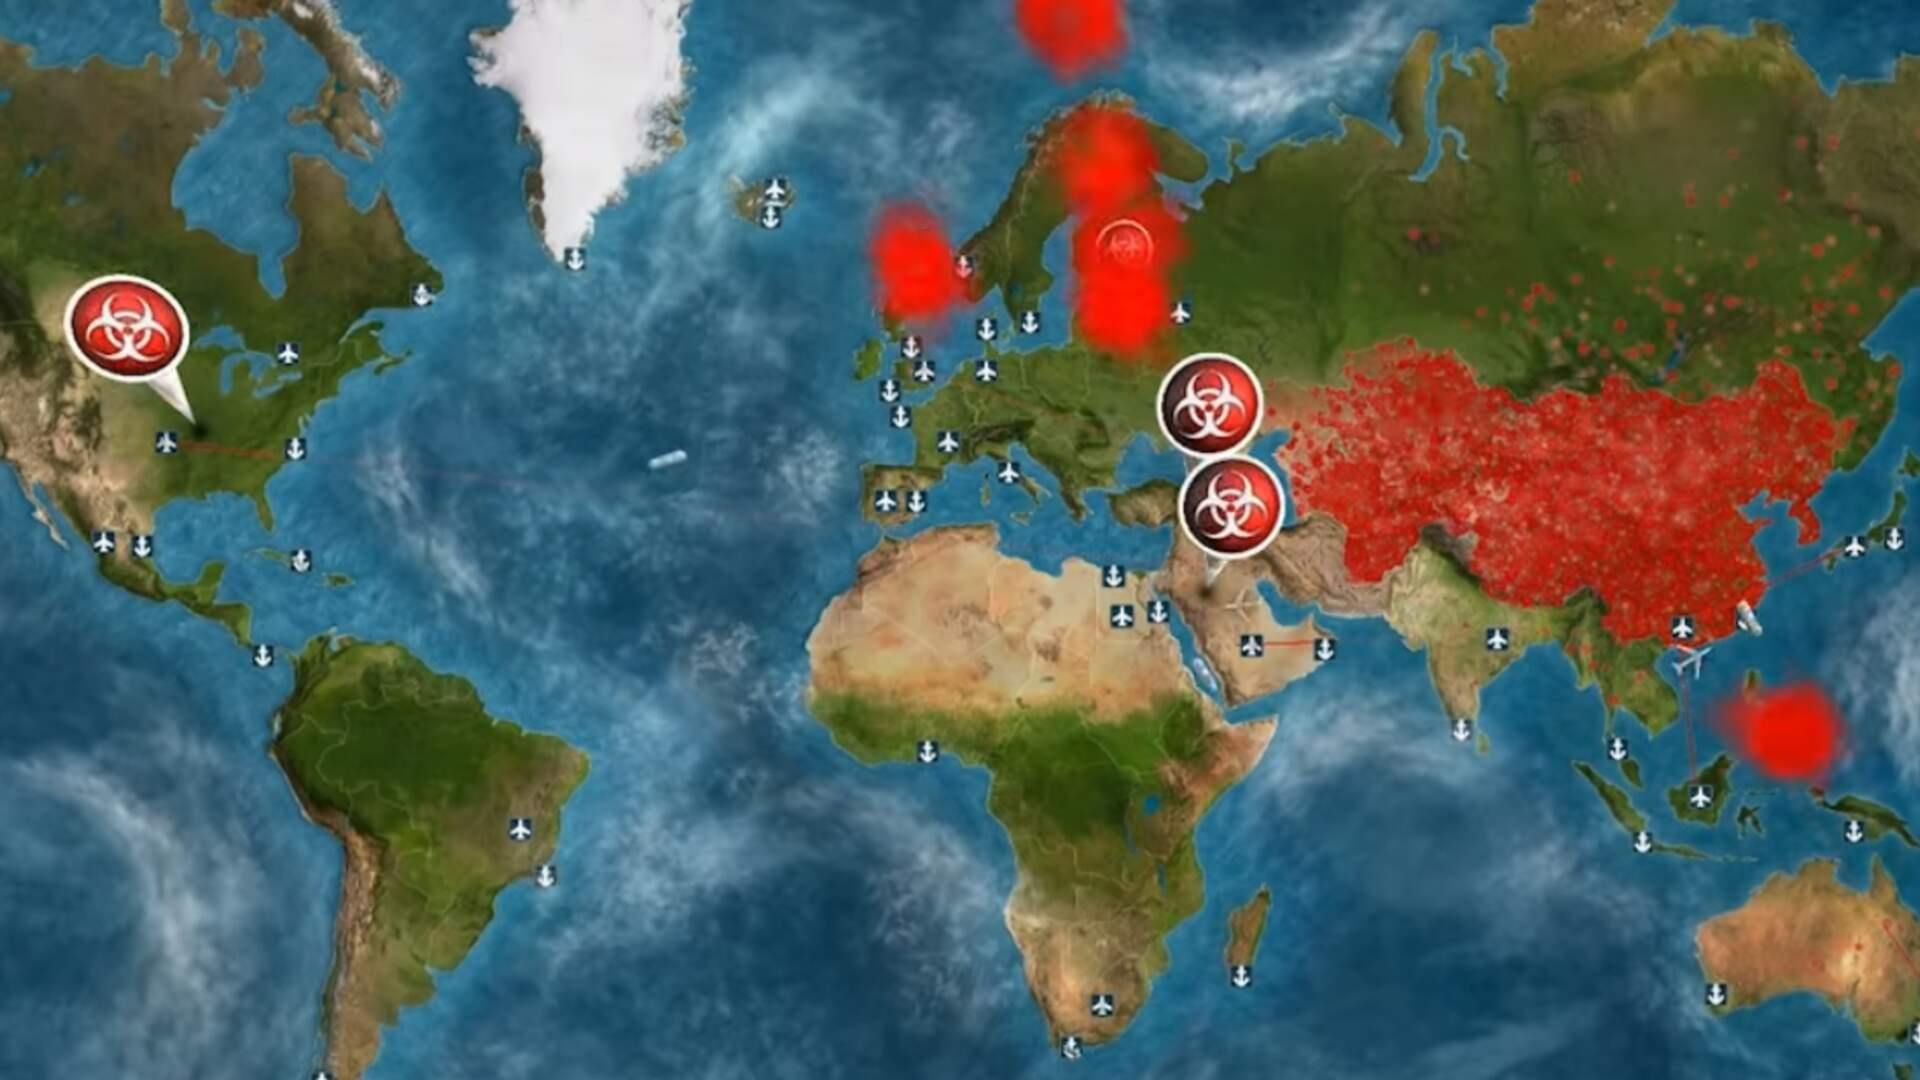 Plague Inc. Will Soon Have a New Disease: Anti-Vaxxers